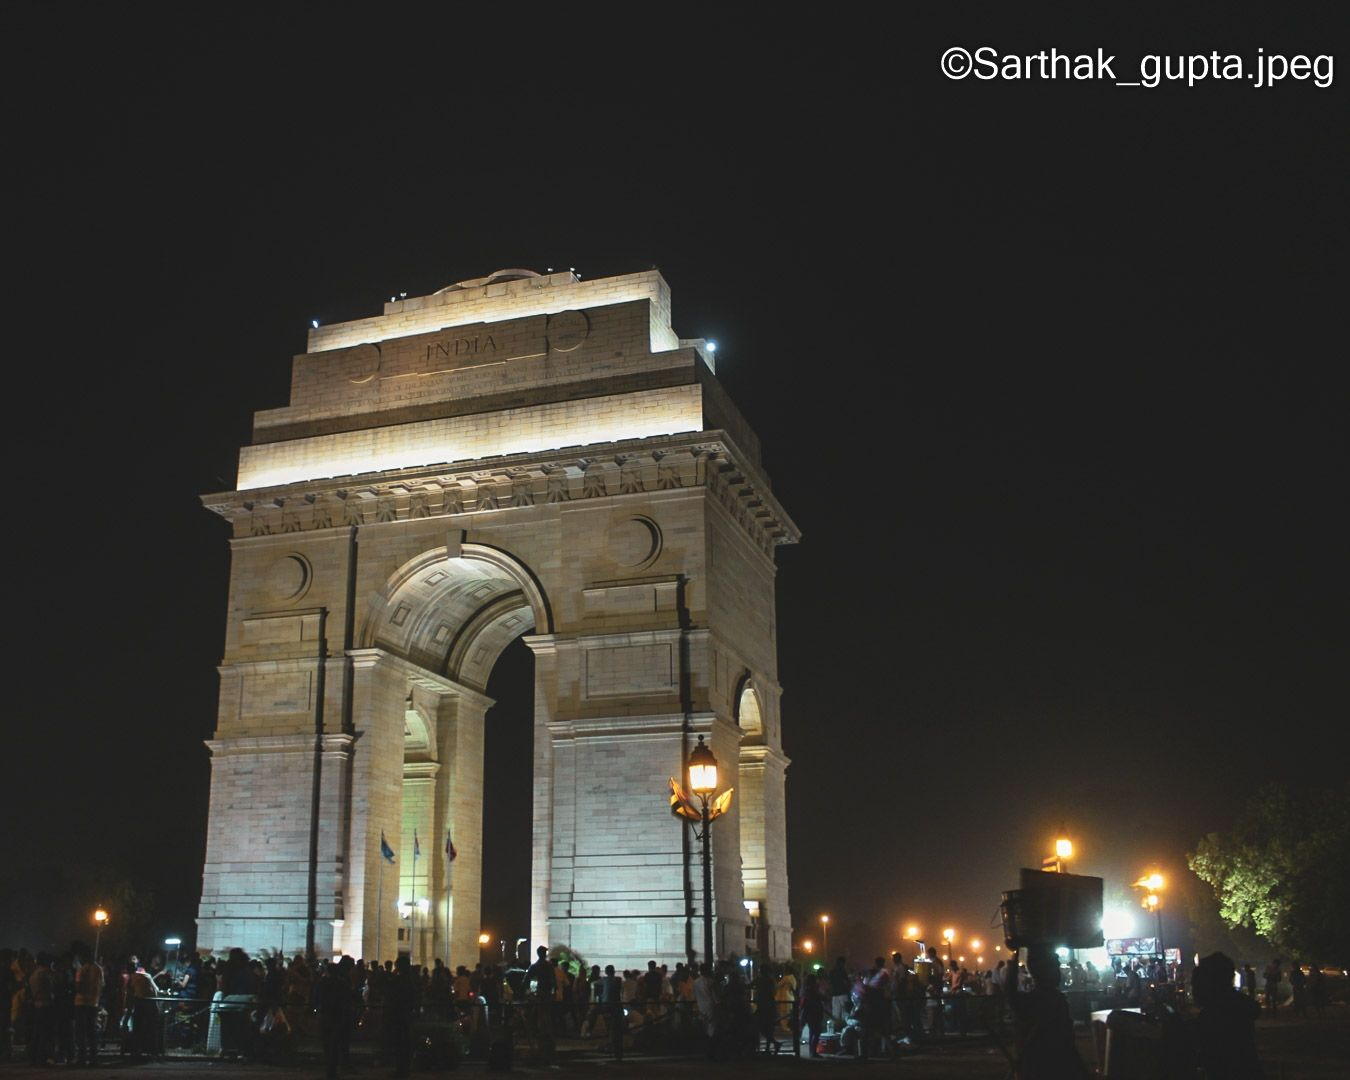 Photo of Delhi By Sarthak Gupta